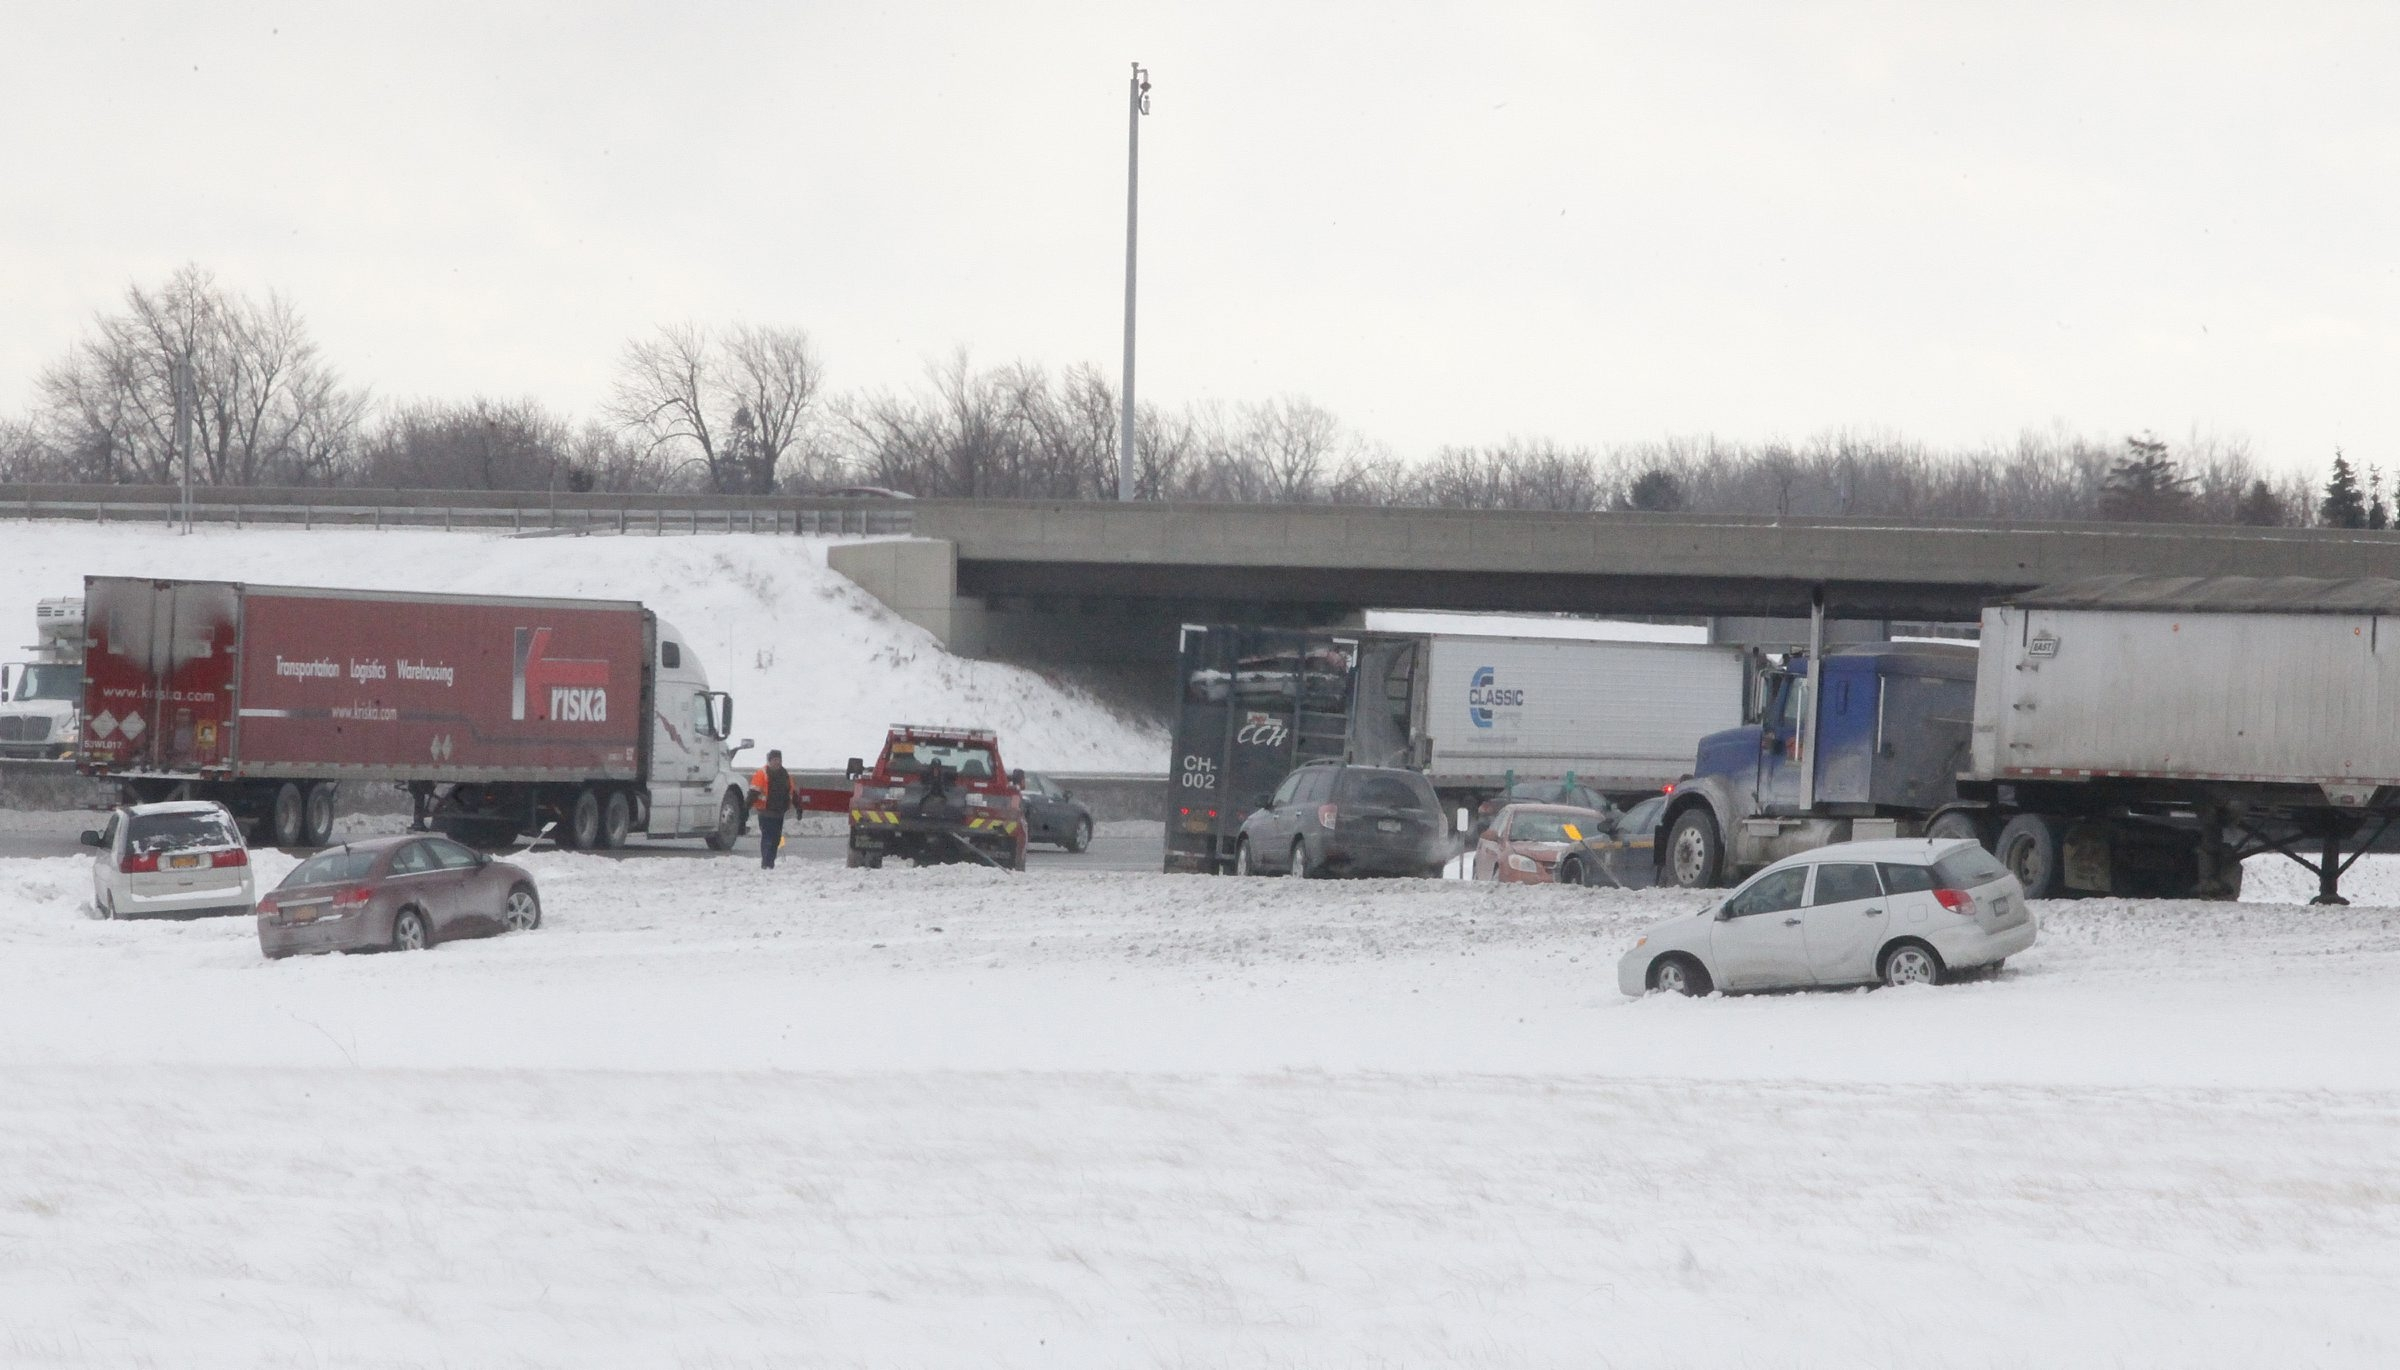 Multiple vehicle are off the road after being involved in an accident Wednesday afternoon on the entrance ramp to the Thruway westbound from the 400.